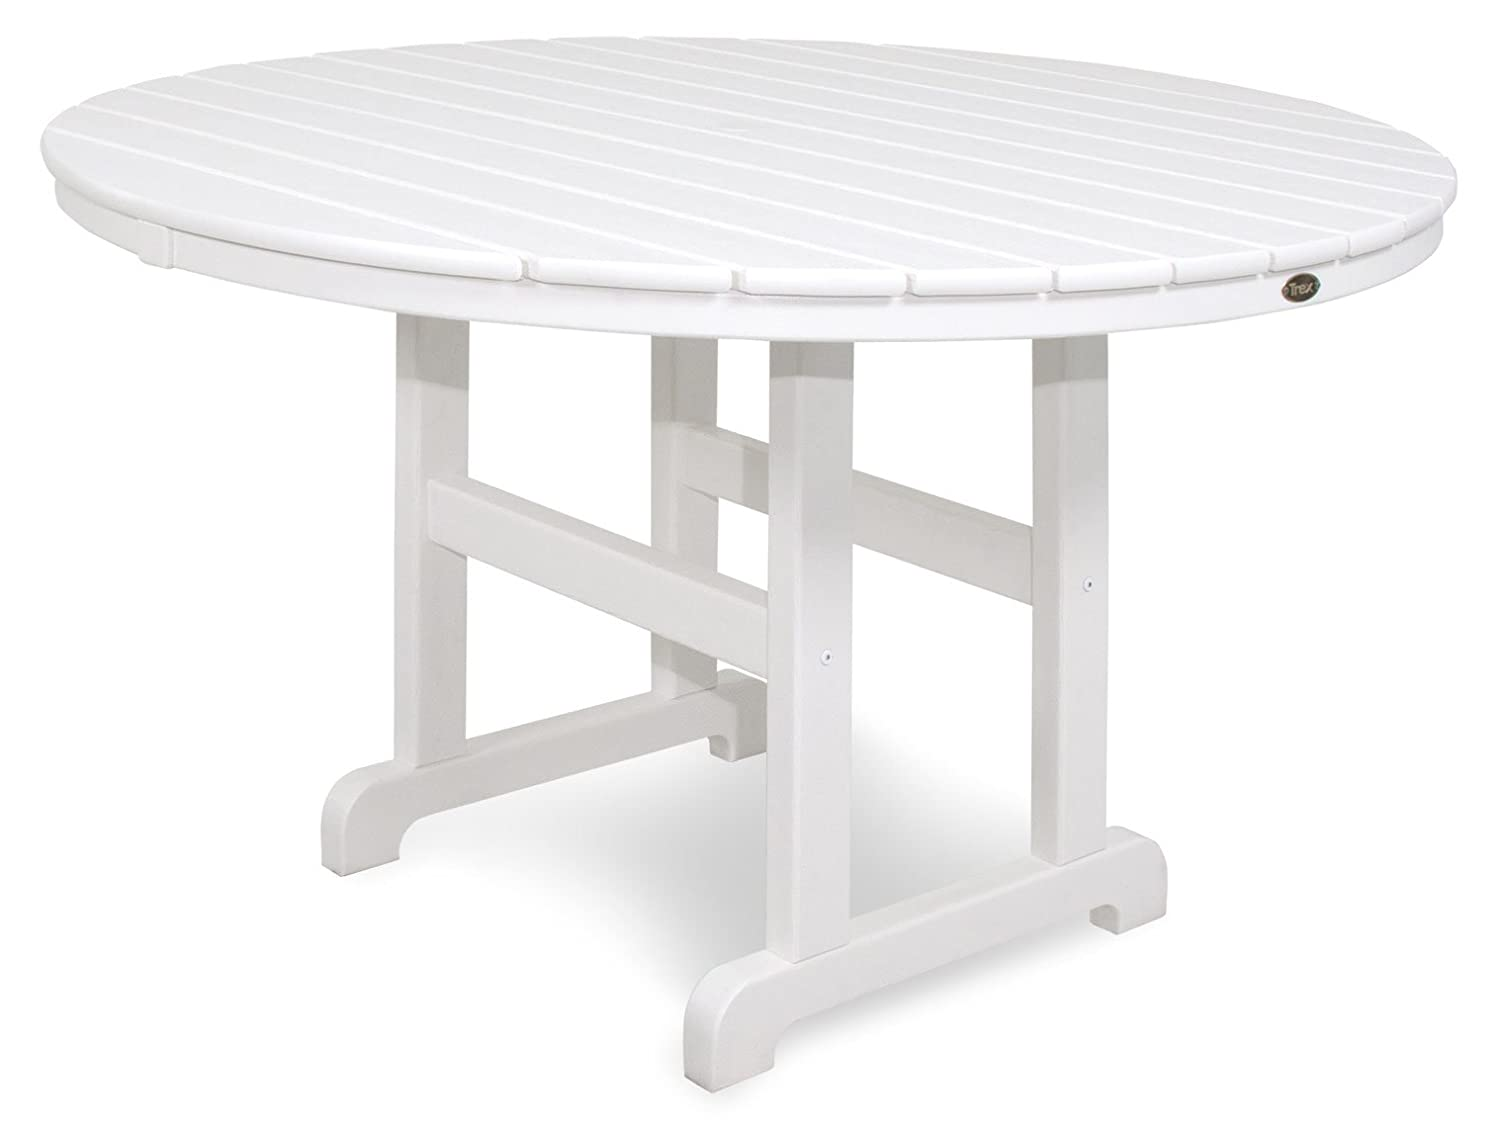 Trex Outdoor Furniture TXRT248CW Monterey Bay Round Dining Table, 48-Inch, Classic White